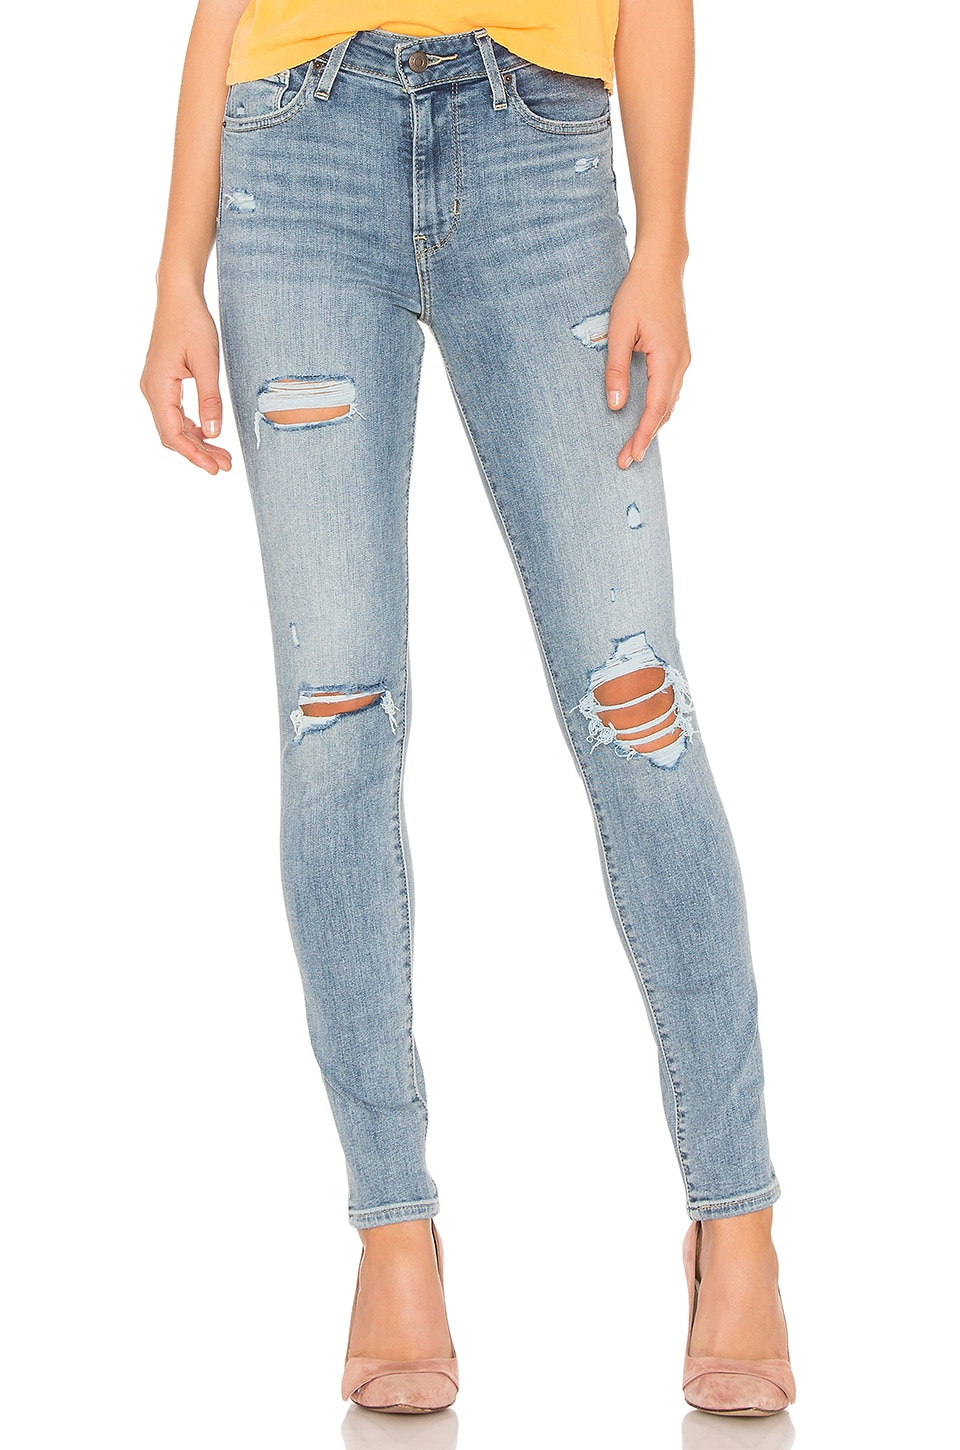 LEVI'S 721 High Rise Skinny in Say Anything